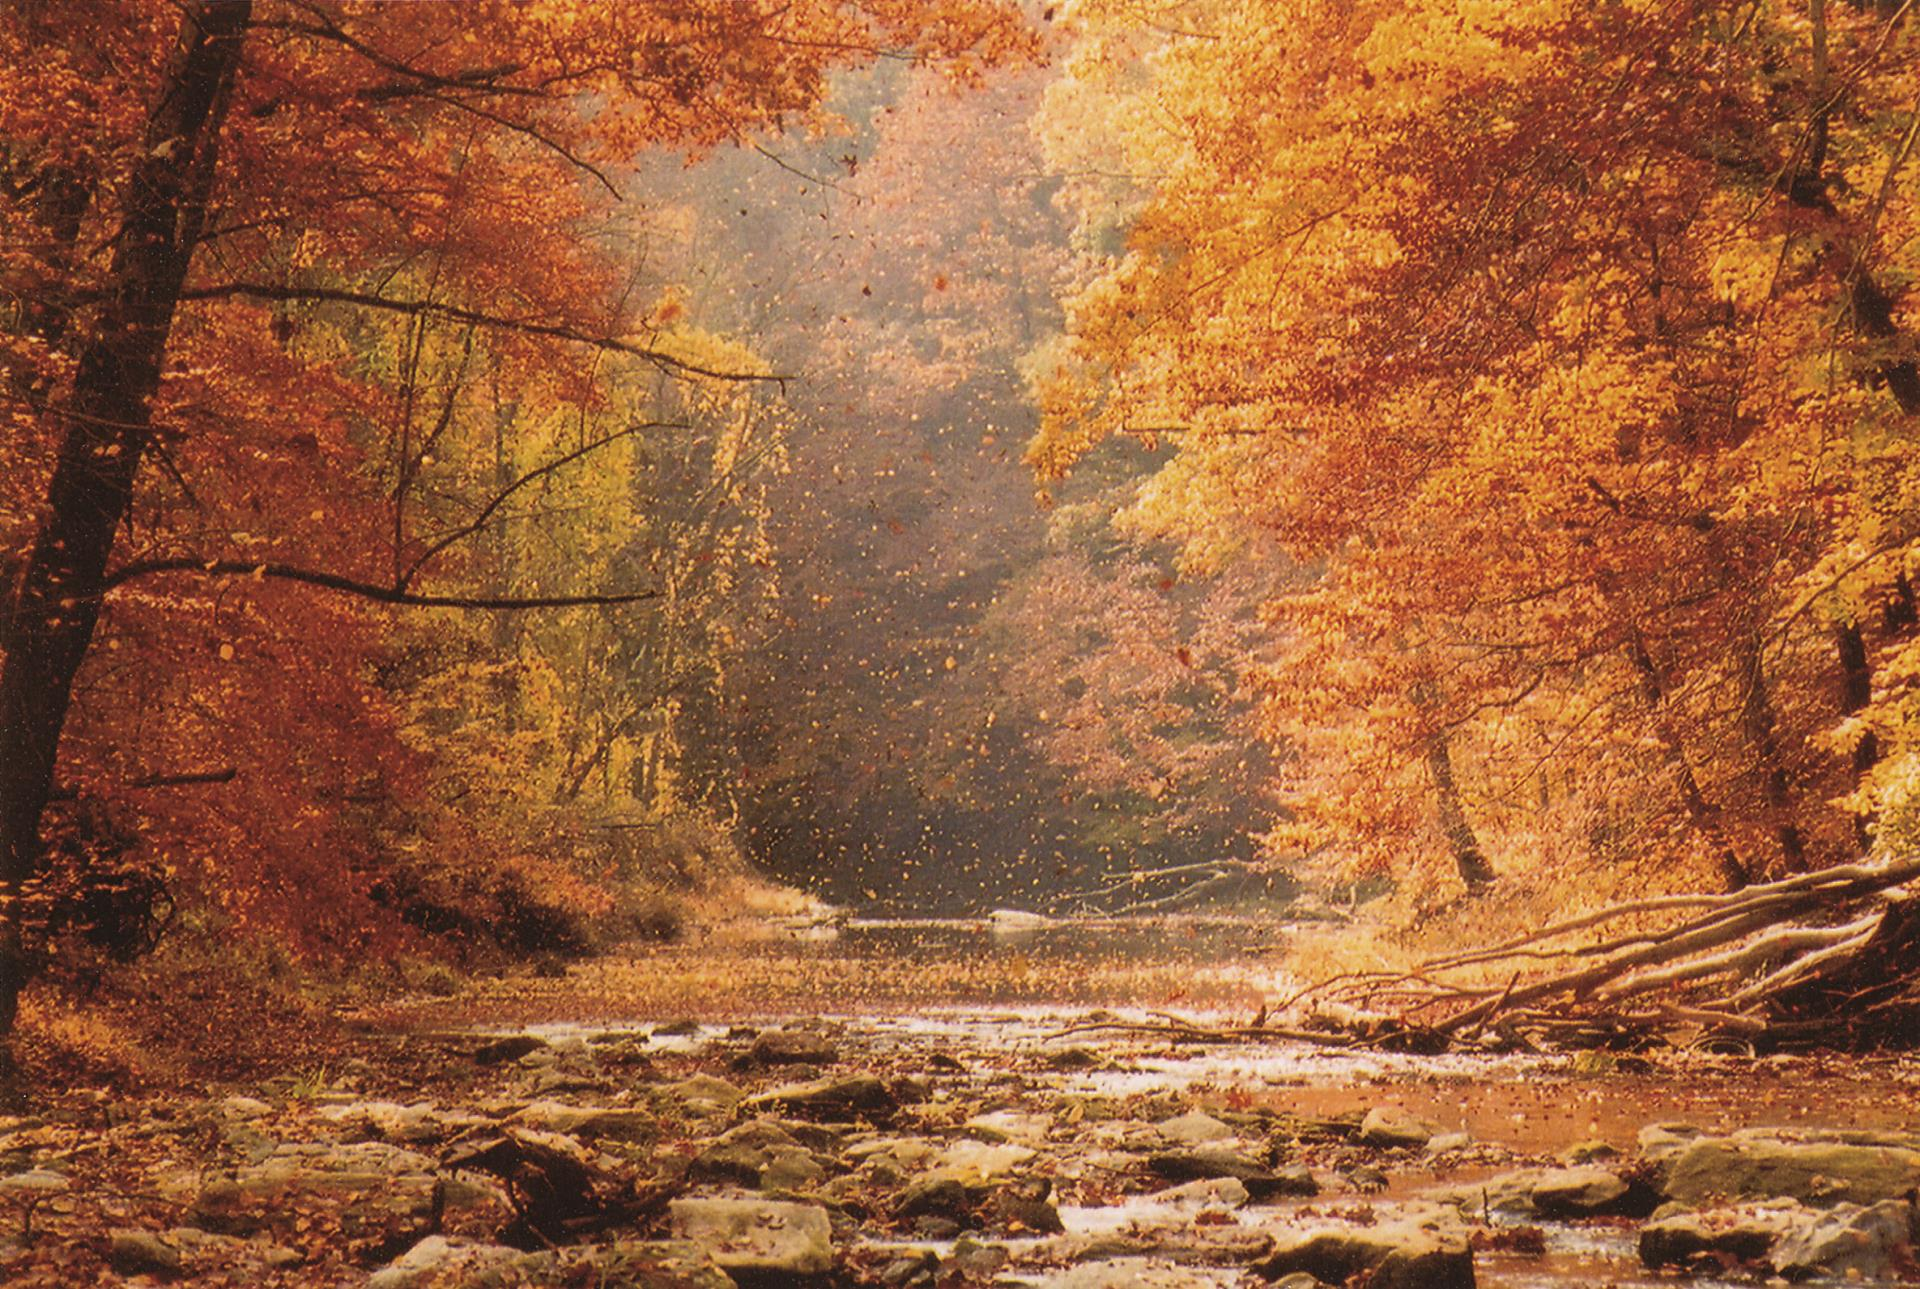 Our many creeks and tributaries provide stunning backdrops for the fall foliage